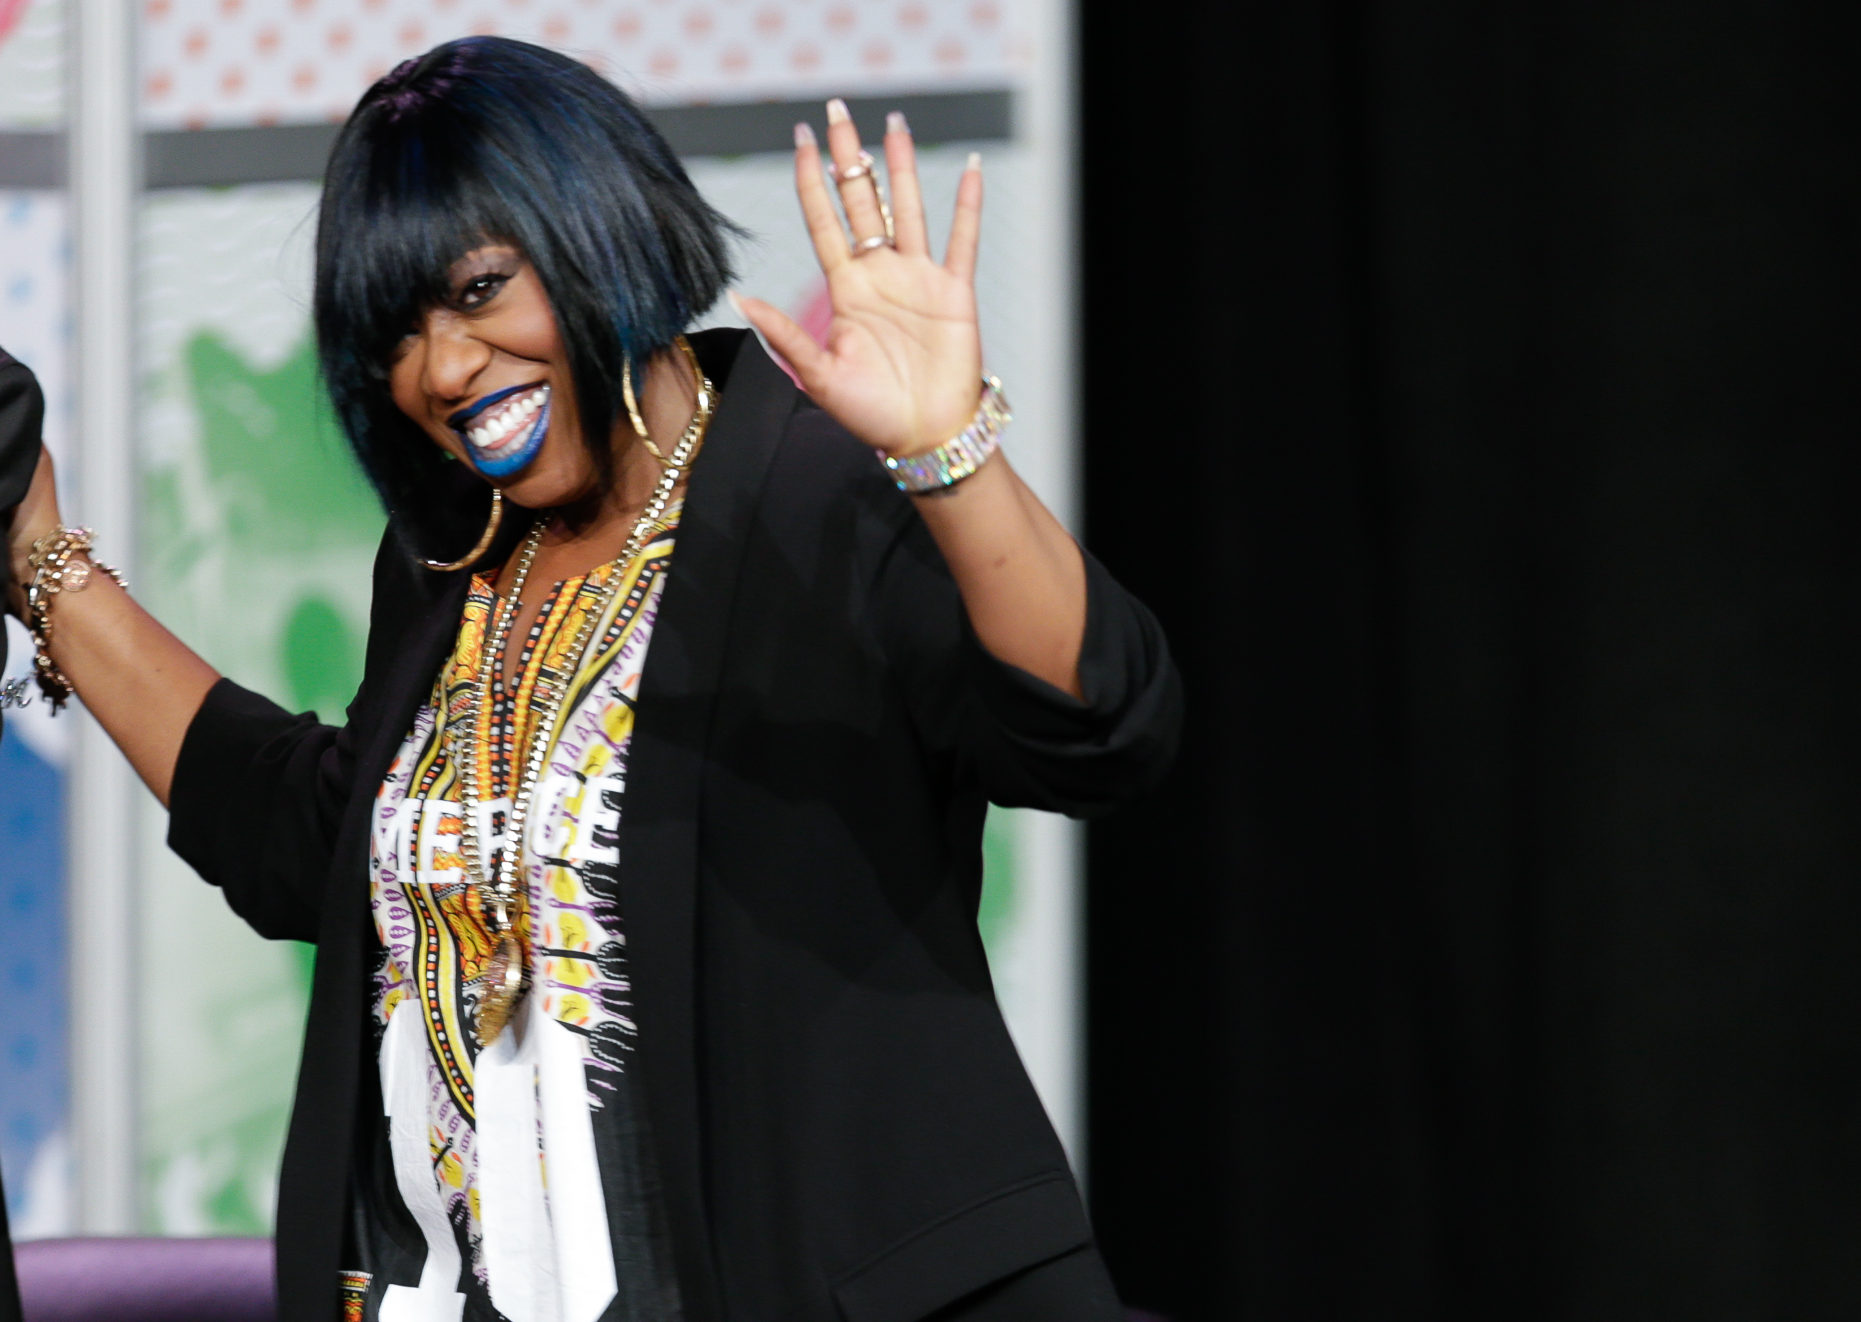 EXCLUSIVE: Missy Elliott Stops Producer's Attempt To Sell Early Recordings